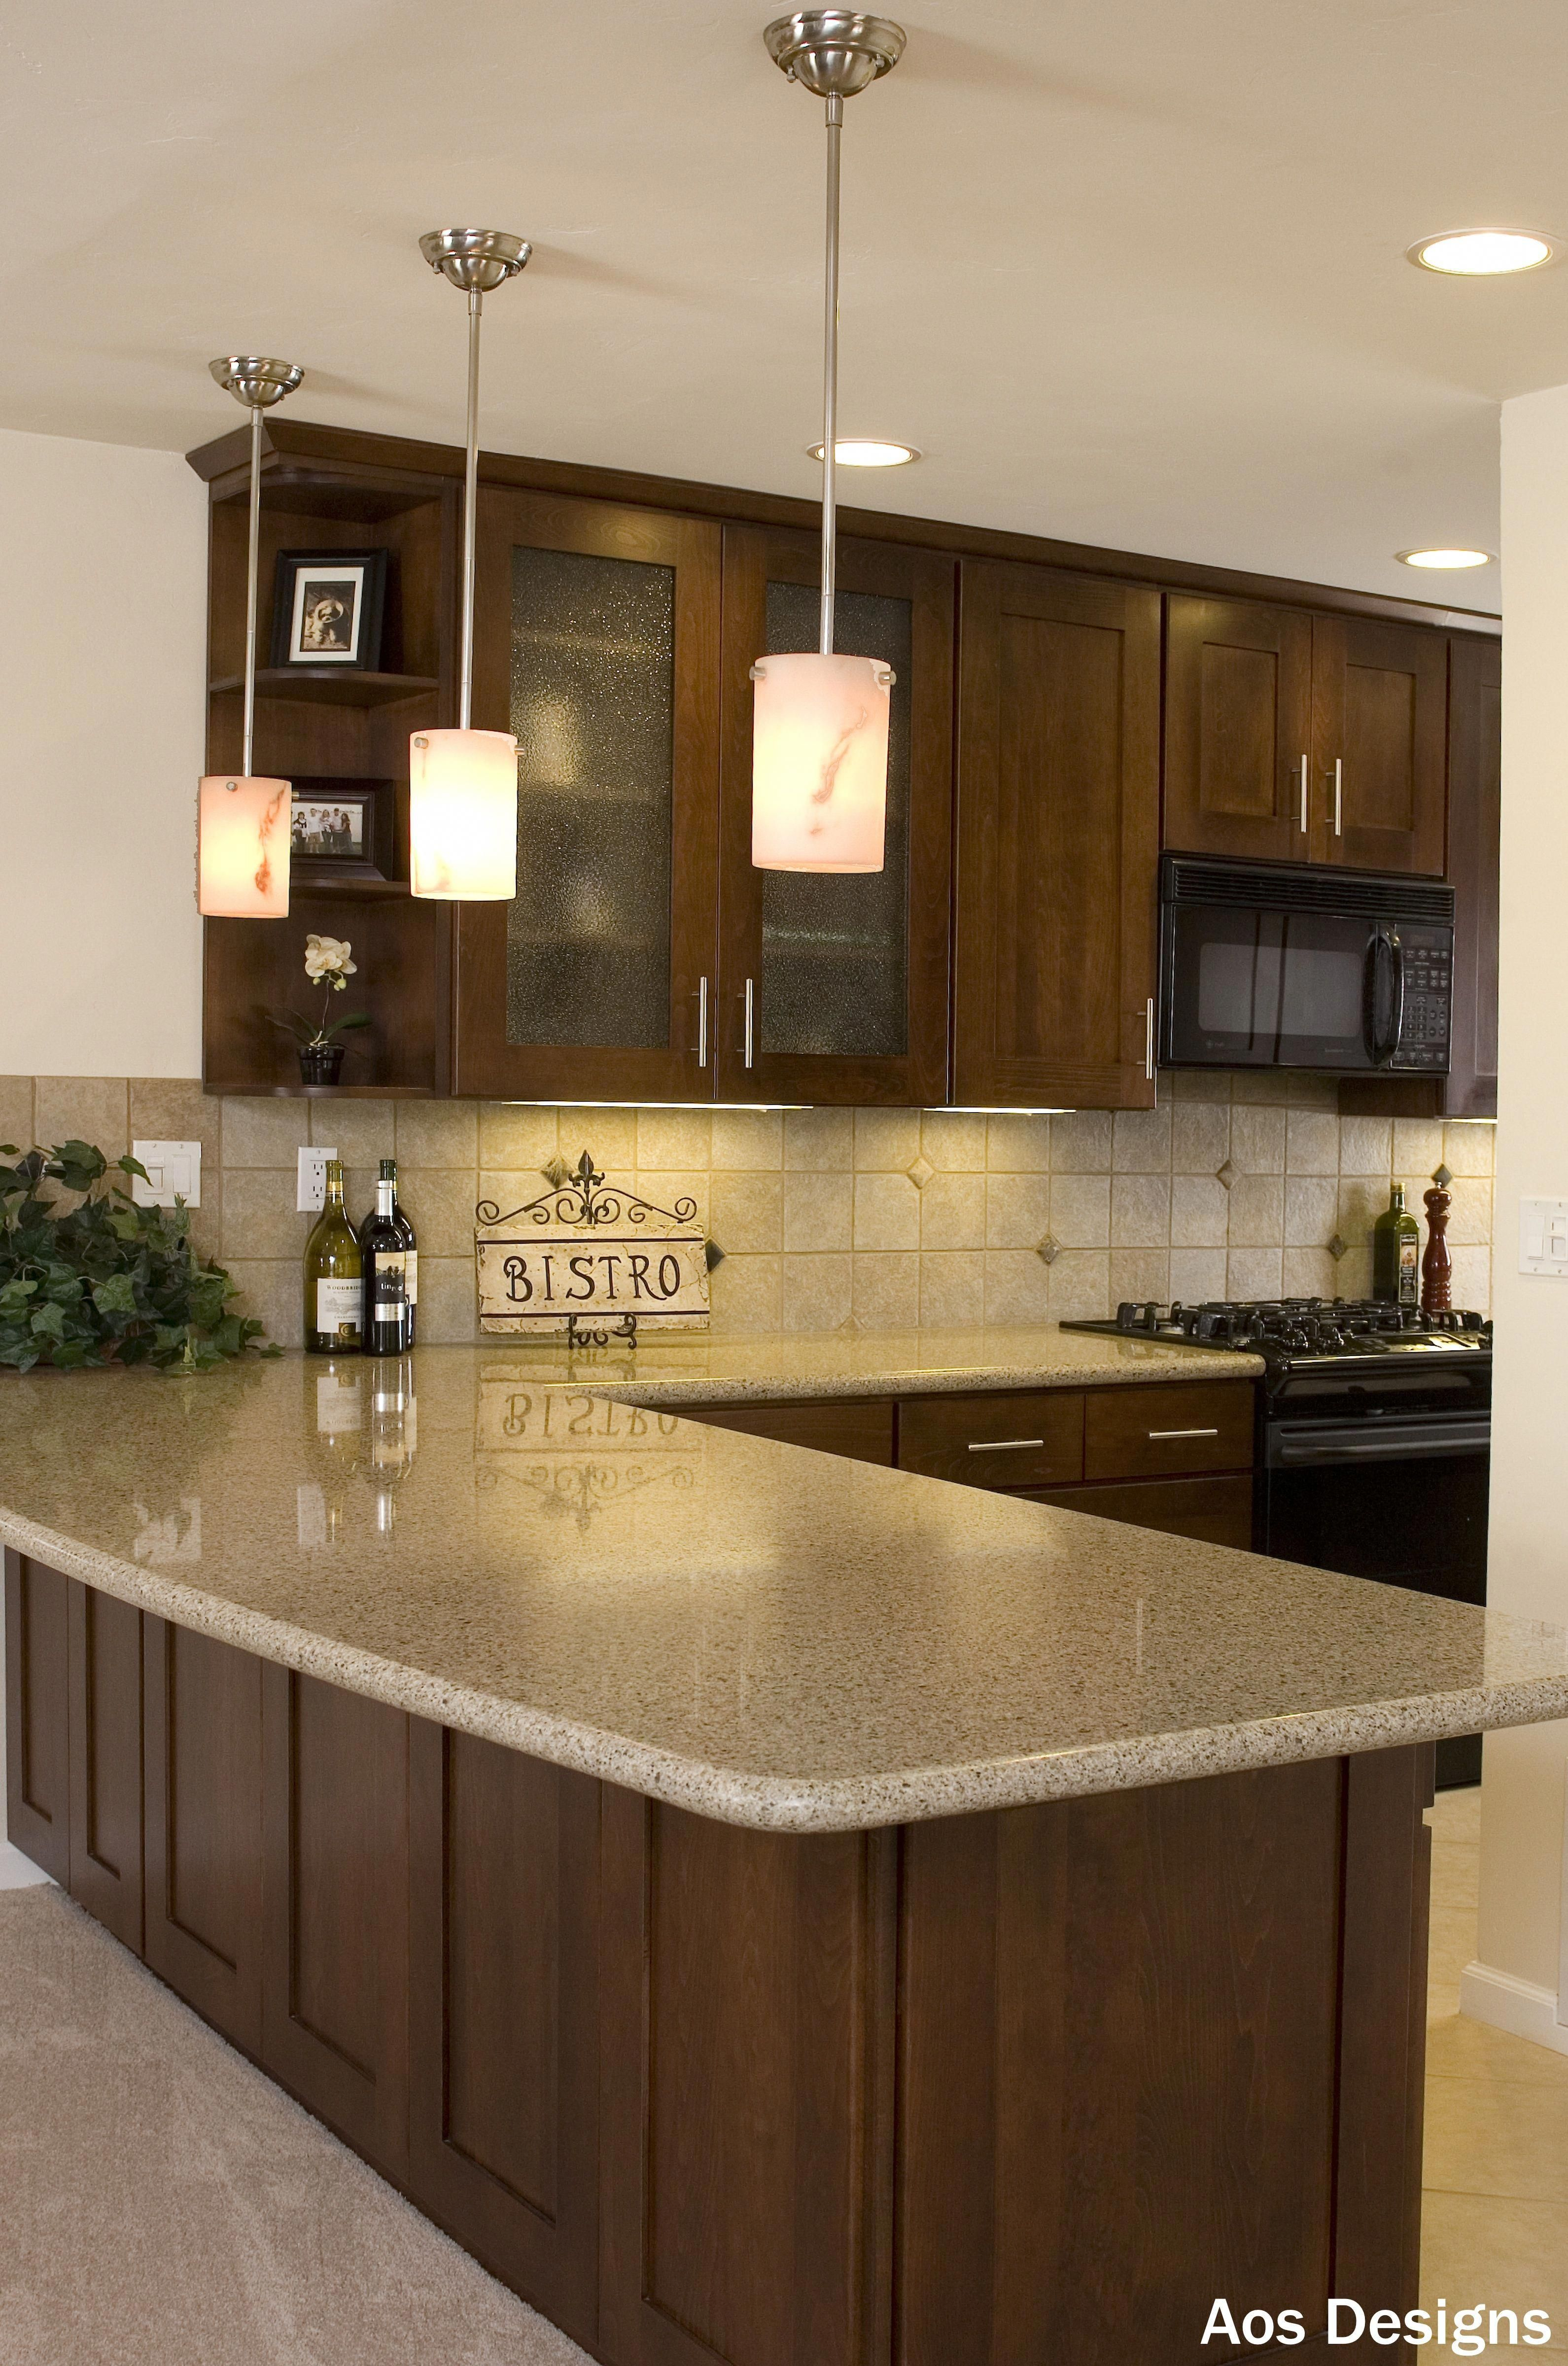 Get Extra Info On Small Kitchen Renovation Kitchen Remodel Small Diy Kitchen Remodel Kitchen Remodel Cost